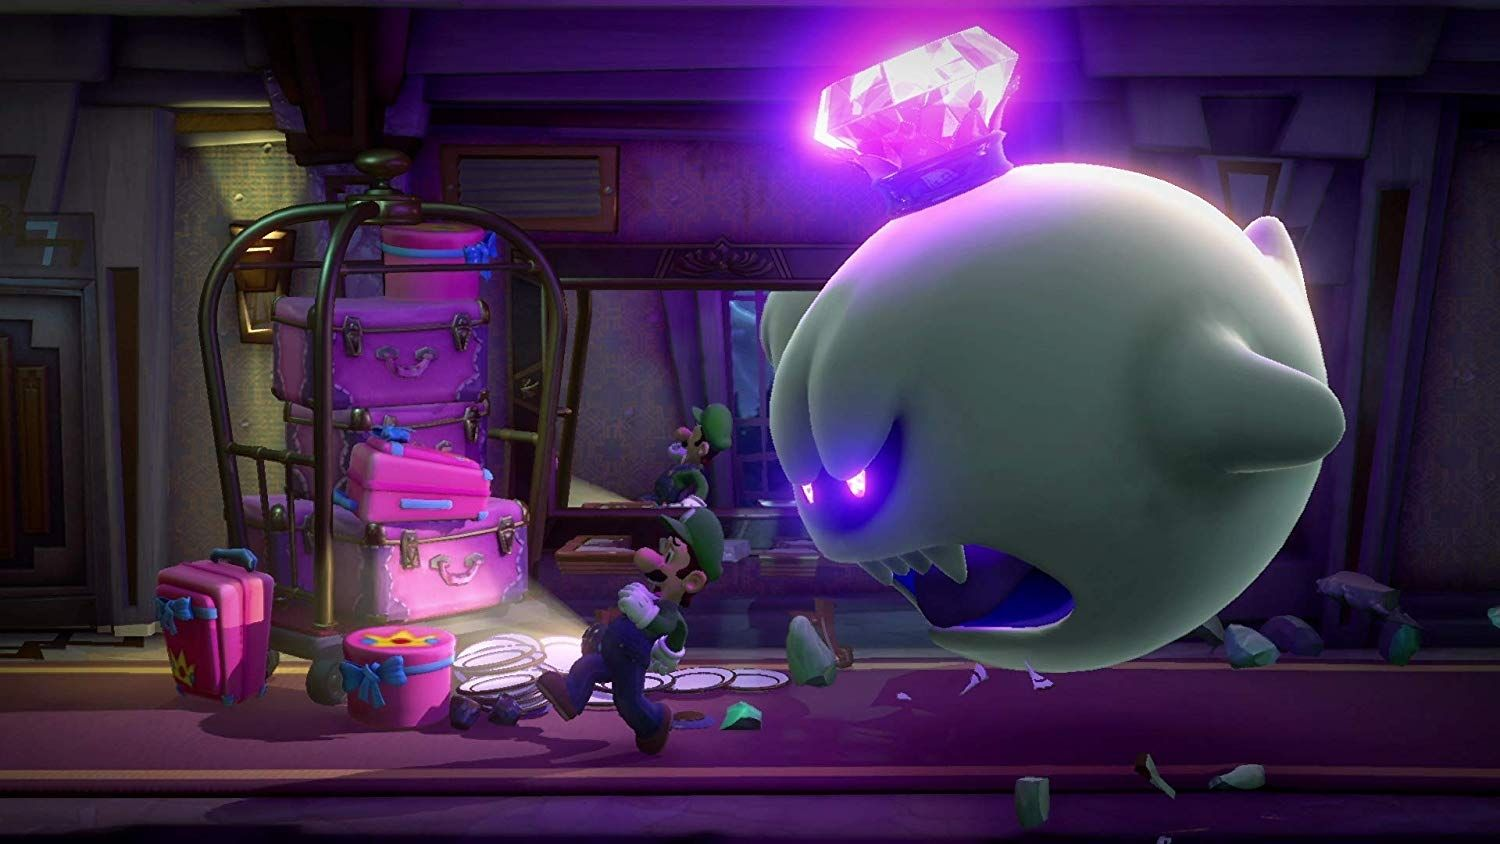 Luigi's Mansion 3 (Nintendo Switch) - 3